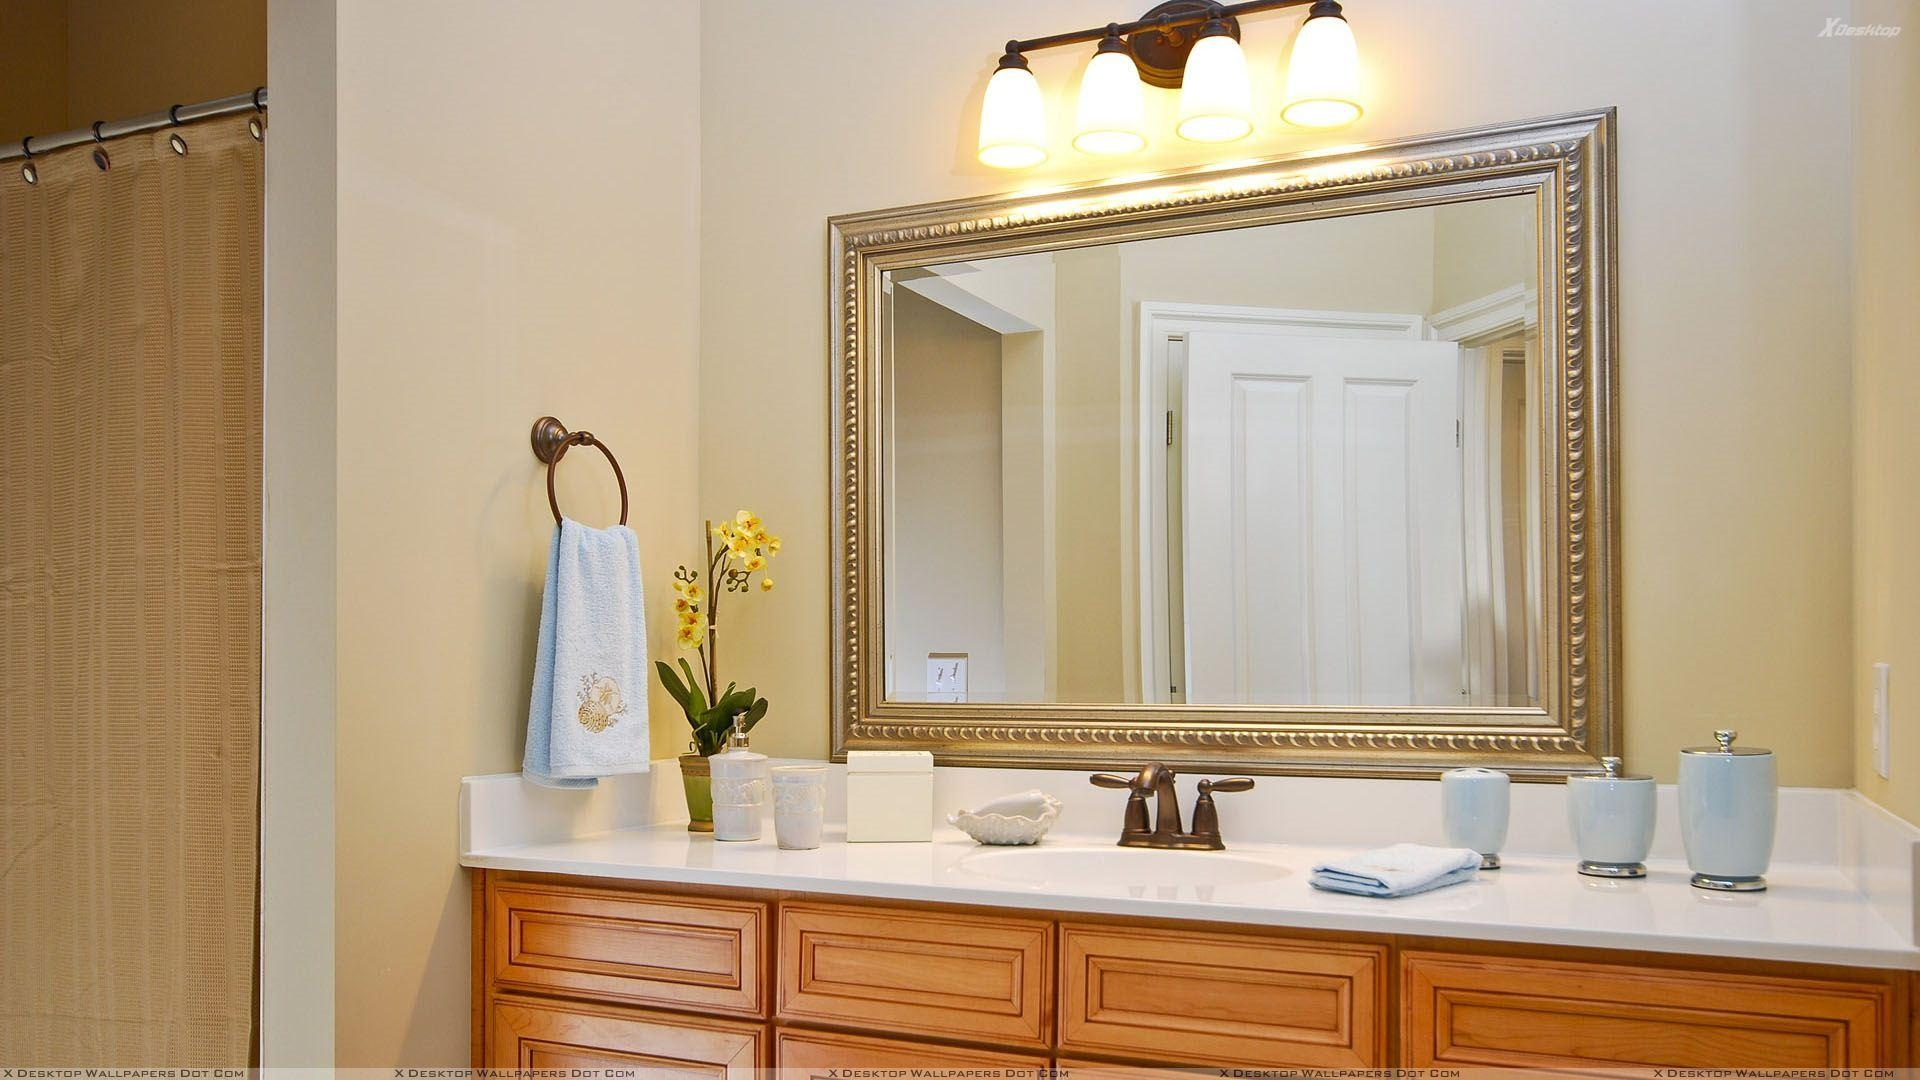 Bathroom : Beautiful Bathroom Vanity Mirrors Decorative Mirrors Regarding  Decorative Mirrors For Bathroom Vanity (Image